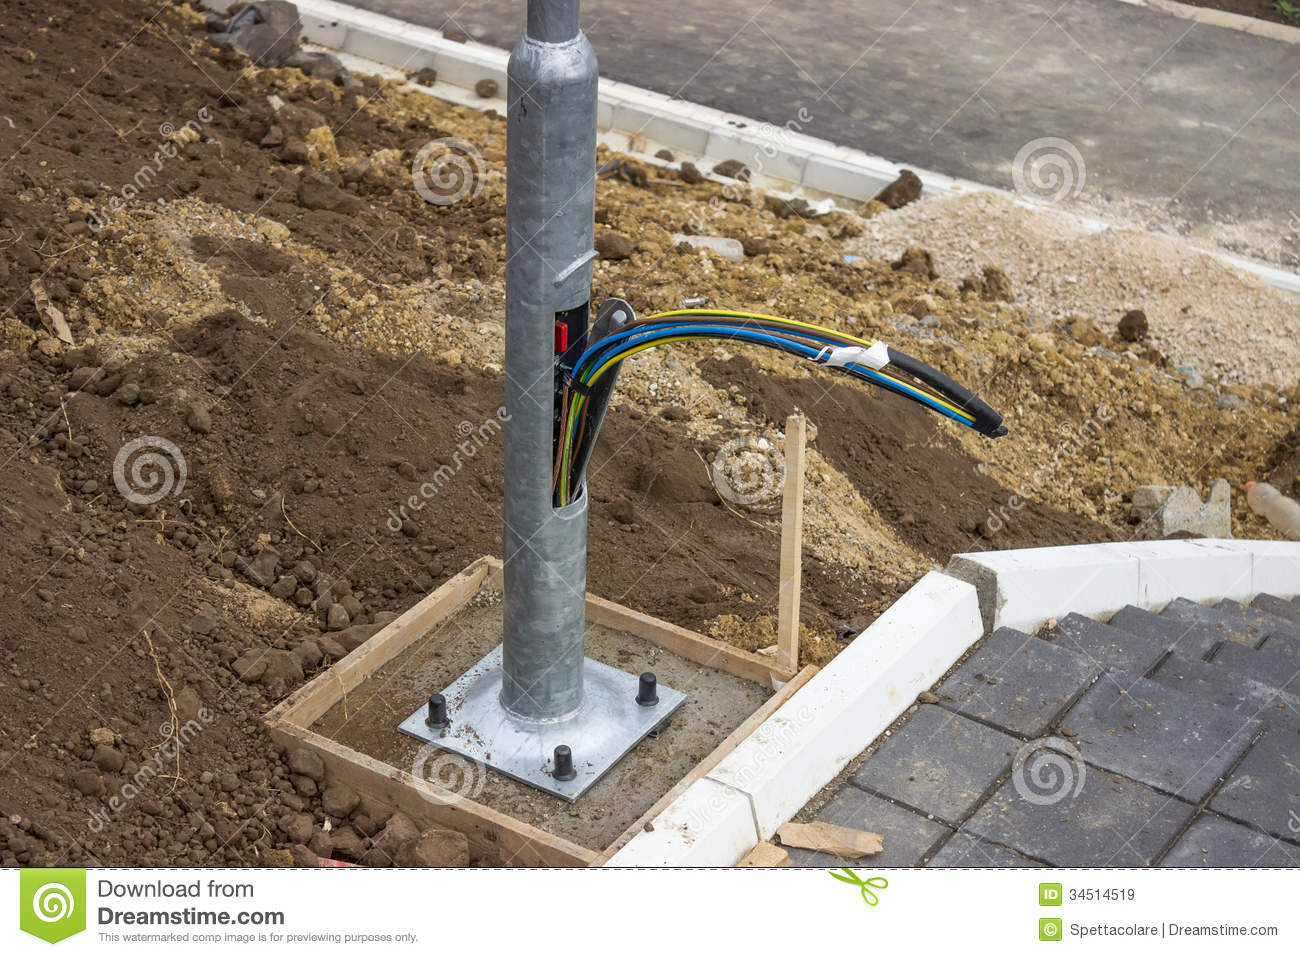 Royalty Free Stock Images Wiring L  Post Worker Shovel Looking Lost Manhole Working Excavator Building Area Image34514519